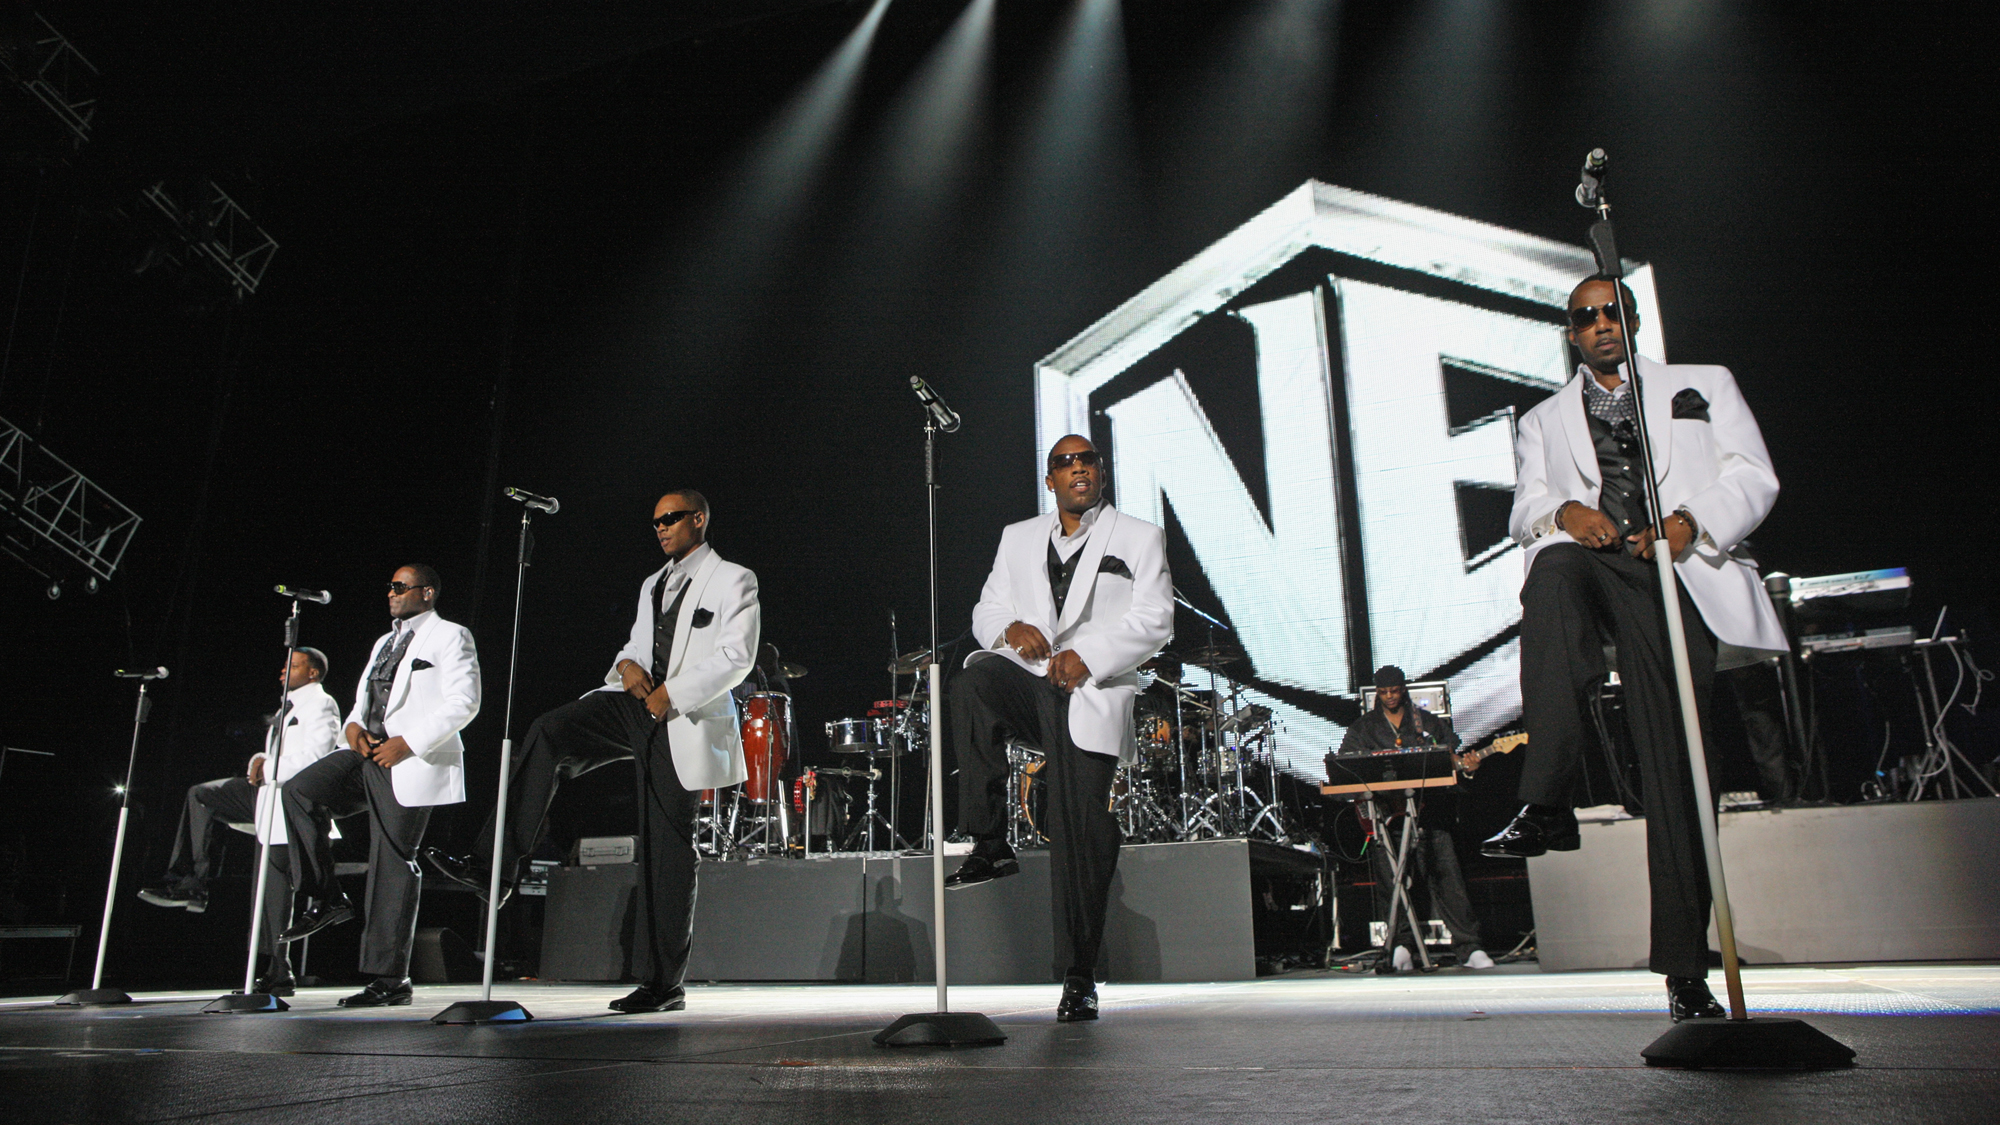 (L- R) Ricky Bell, Johnny Gill Ronnie Devoe, Michael Bivins, and Ralph Tresvant of New Edition perform during the 2011 Essence Music Festival at the Louisiana Superdome on July 3, 2011 in New Orleans, Louisiana.